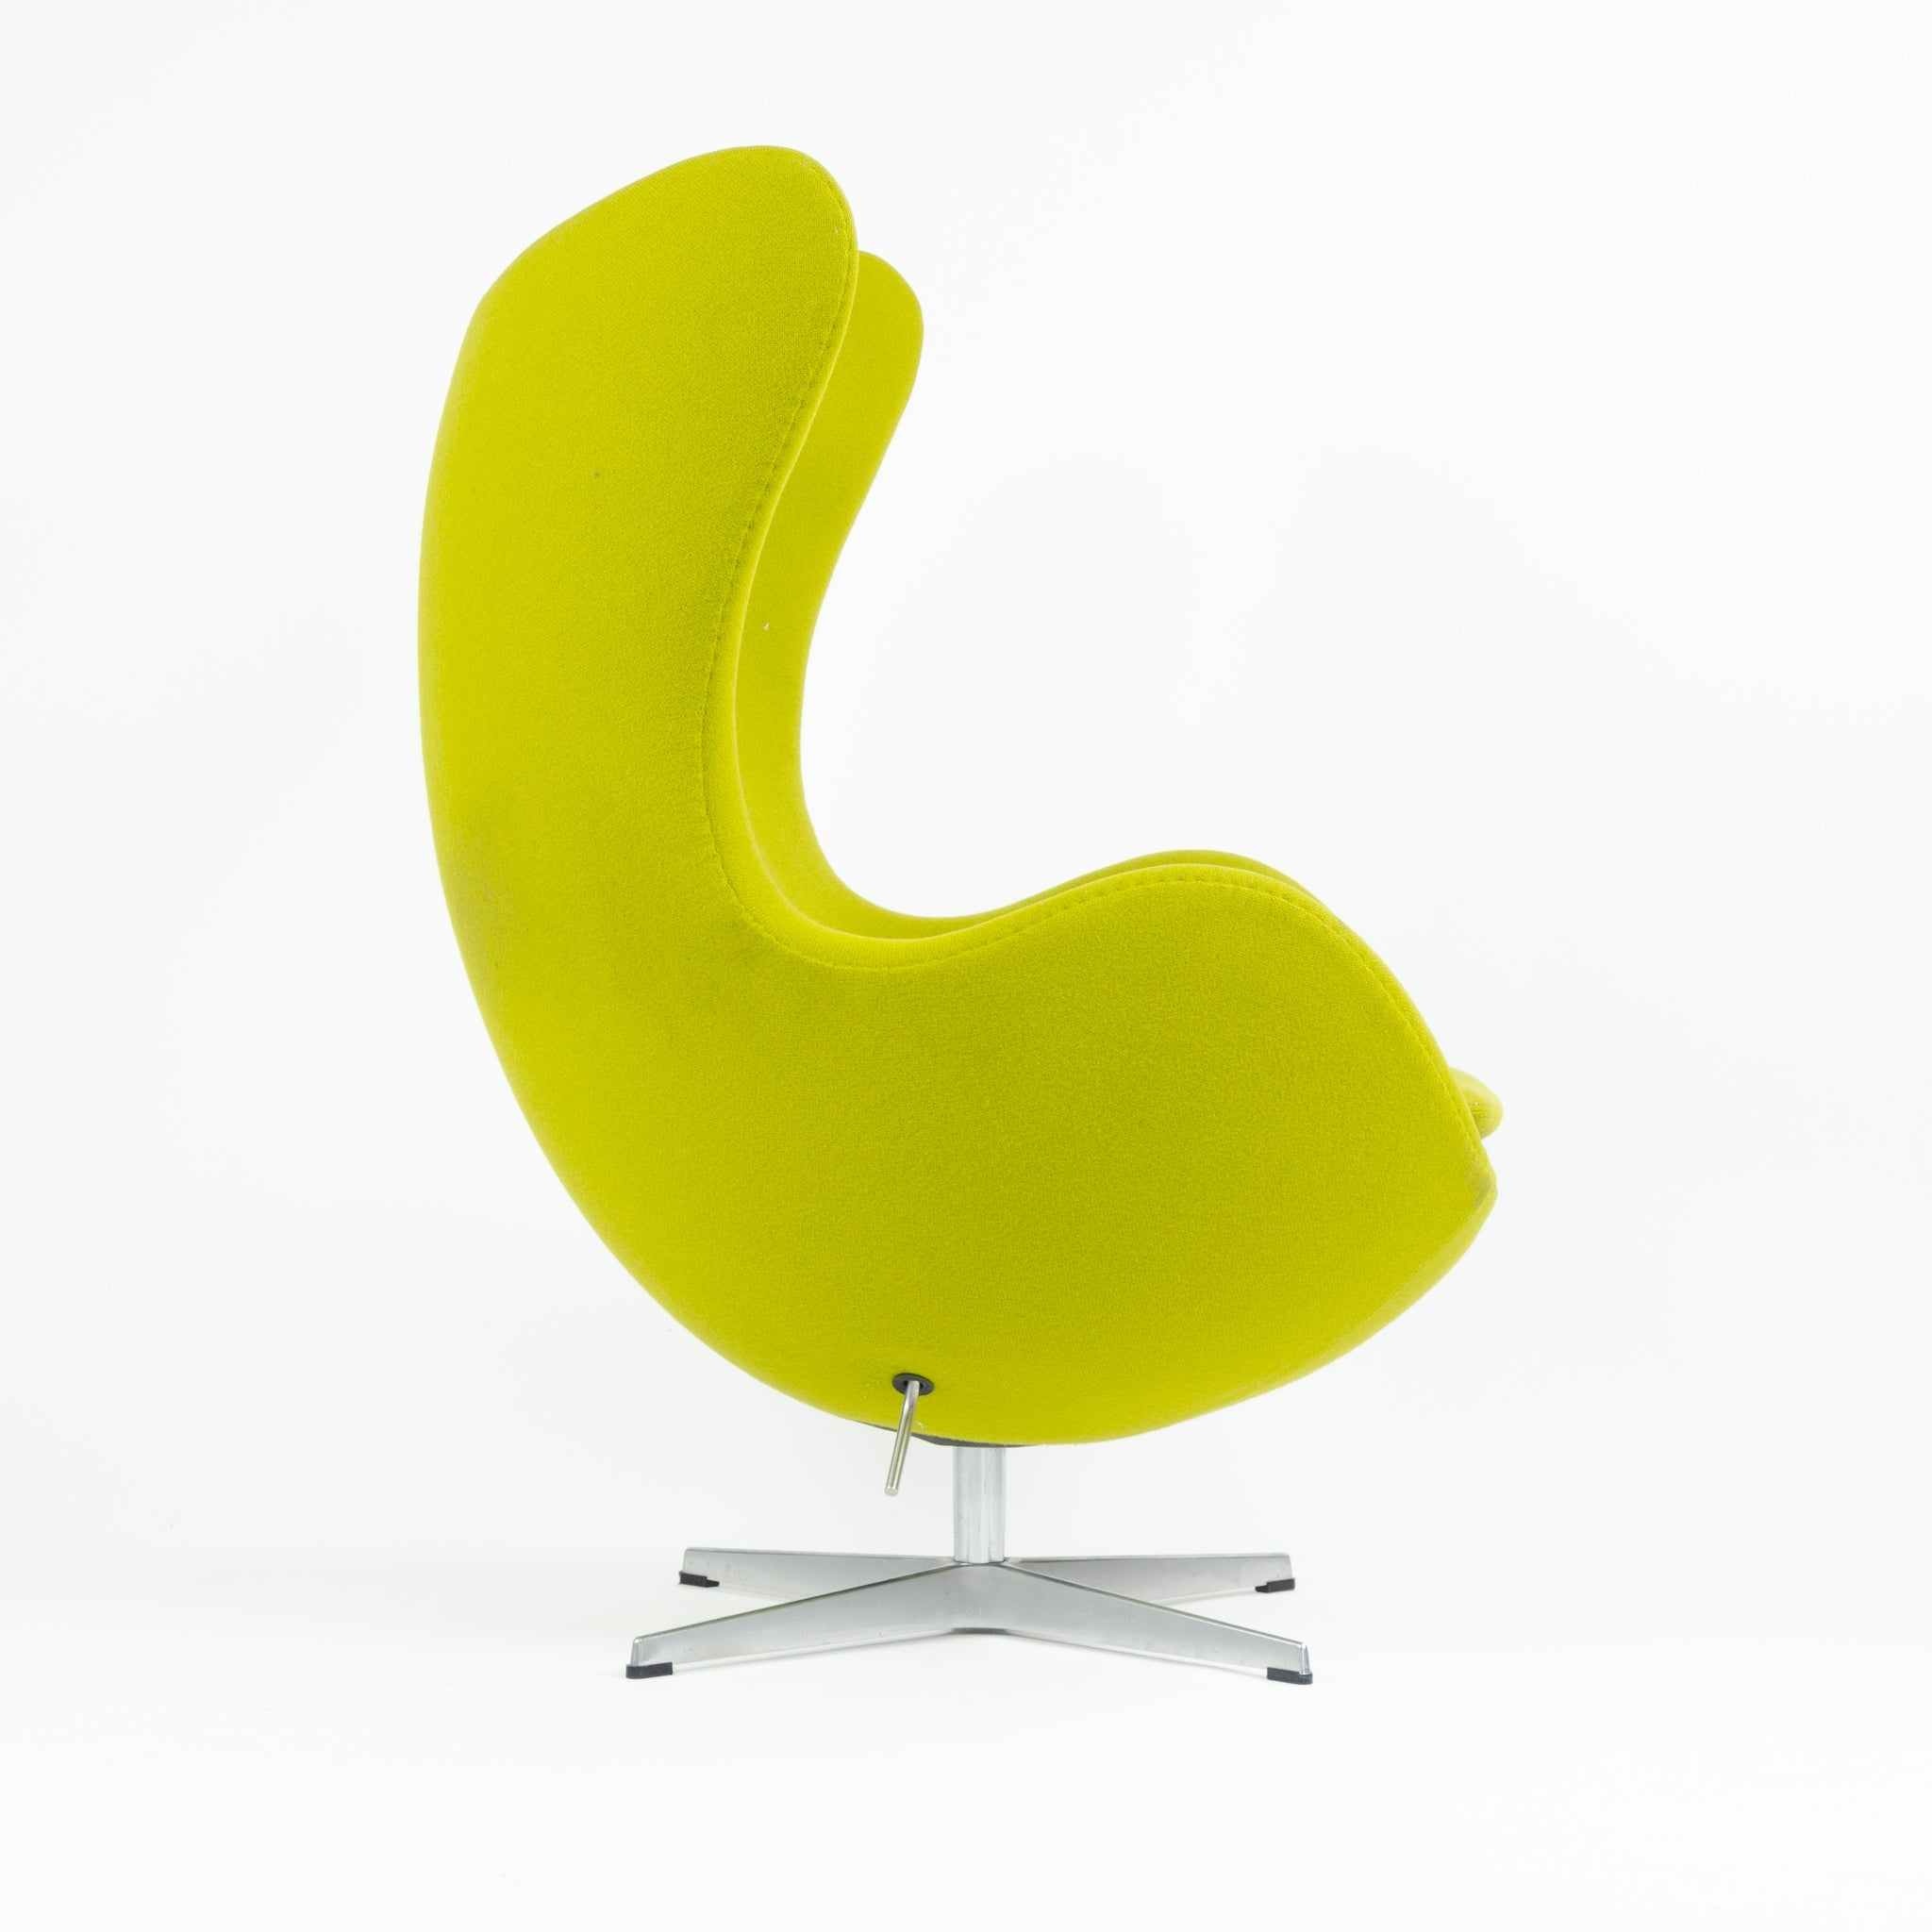 2003 Egg Chair by Arne Jacobsen for Fritz Hansen Original Fabric Denmark Green